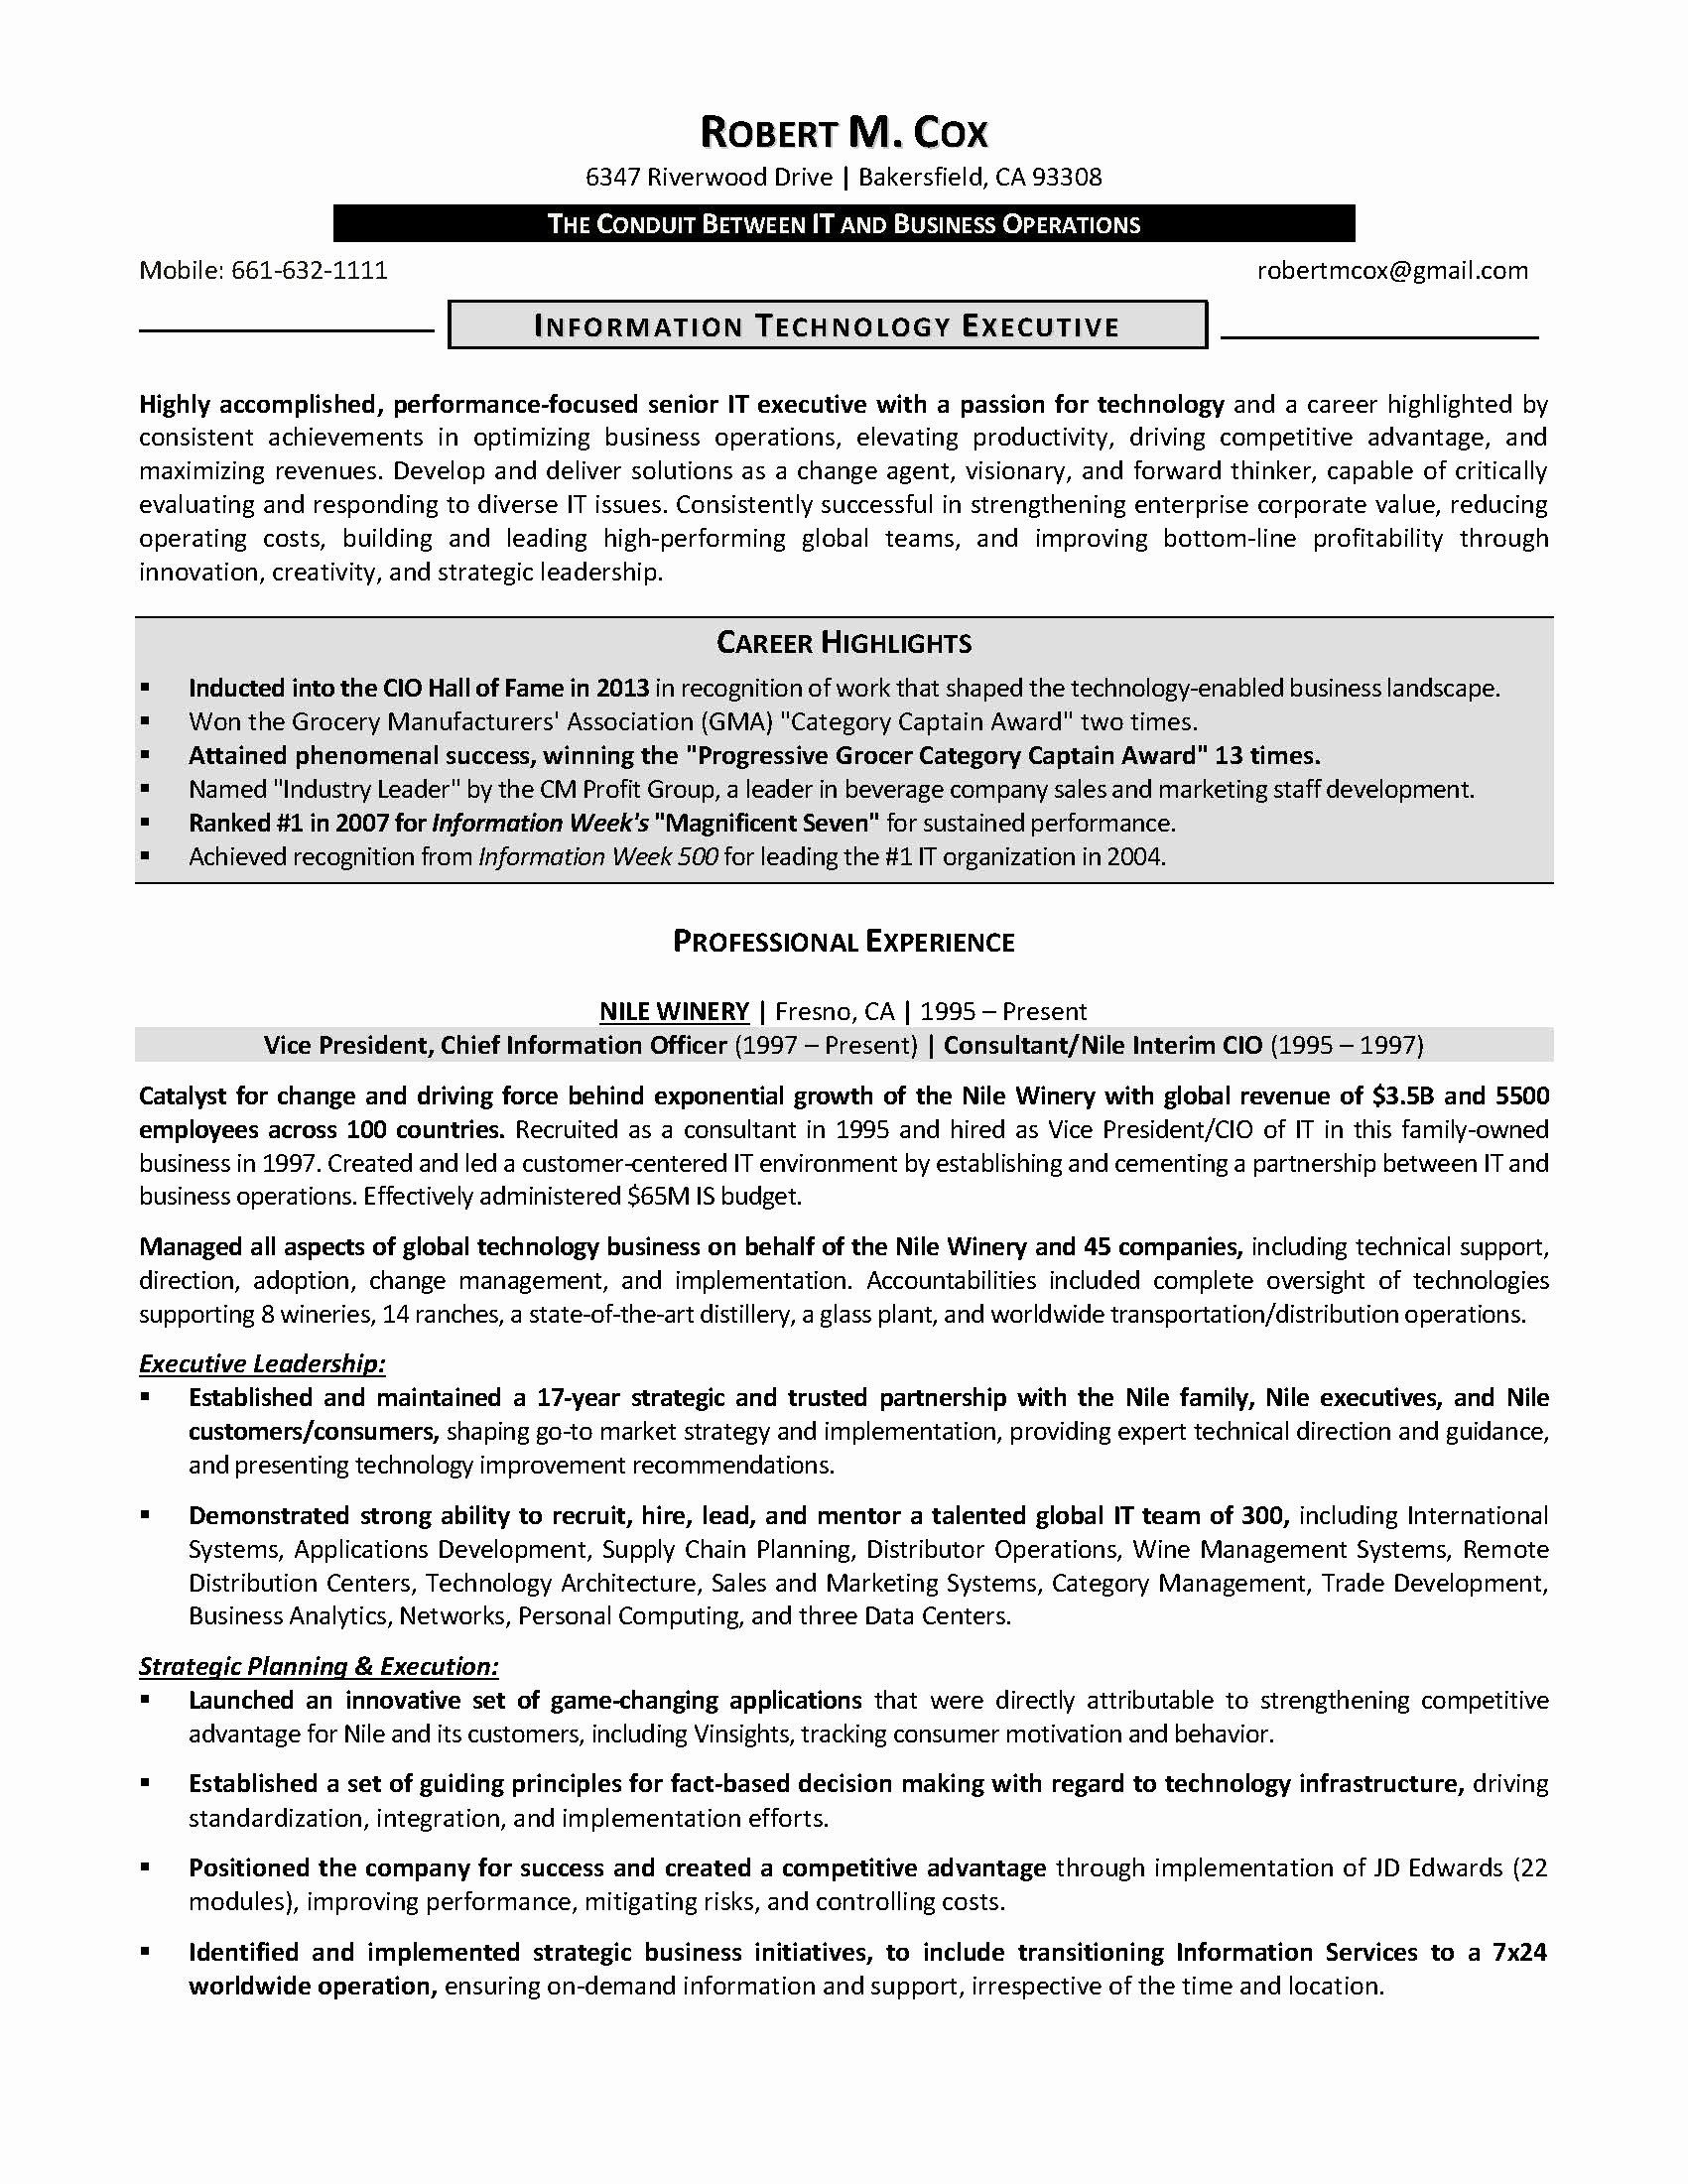 23 Resume Clubs and organizations Examples in 2020